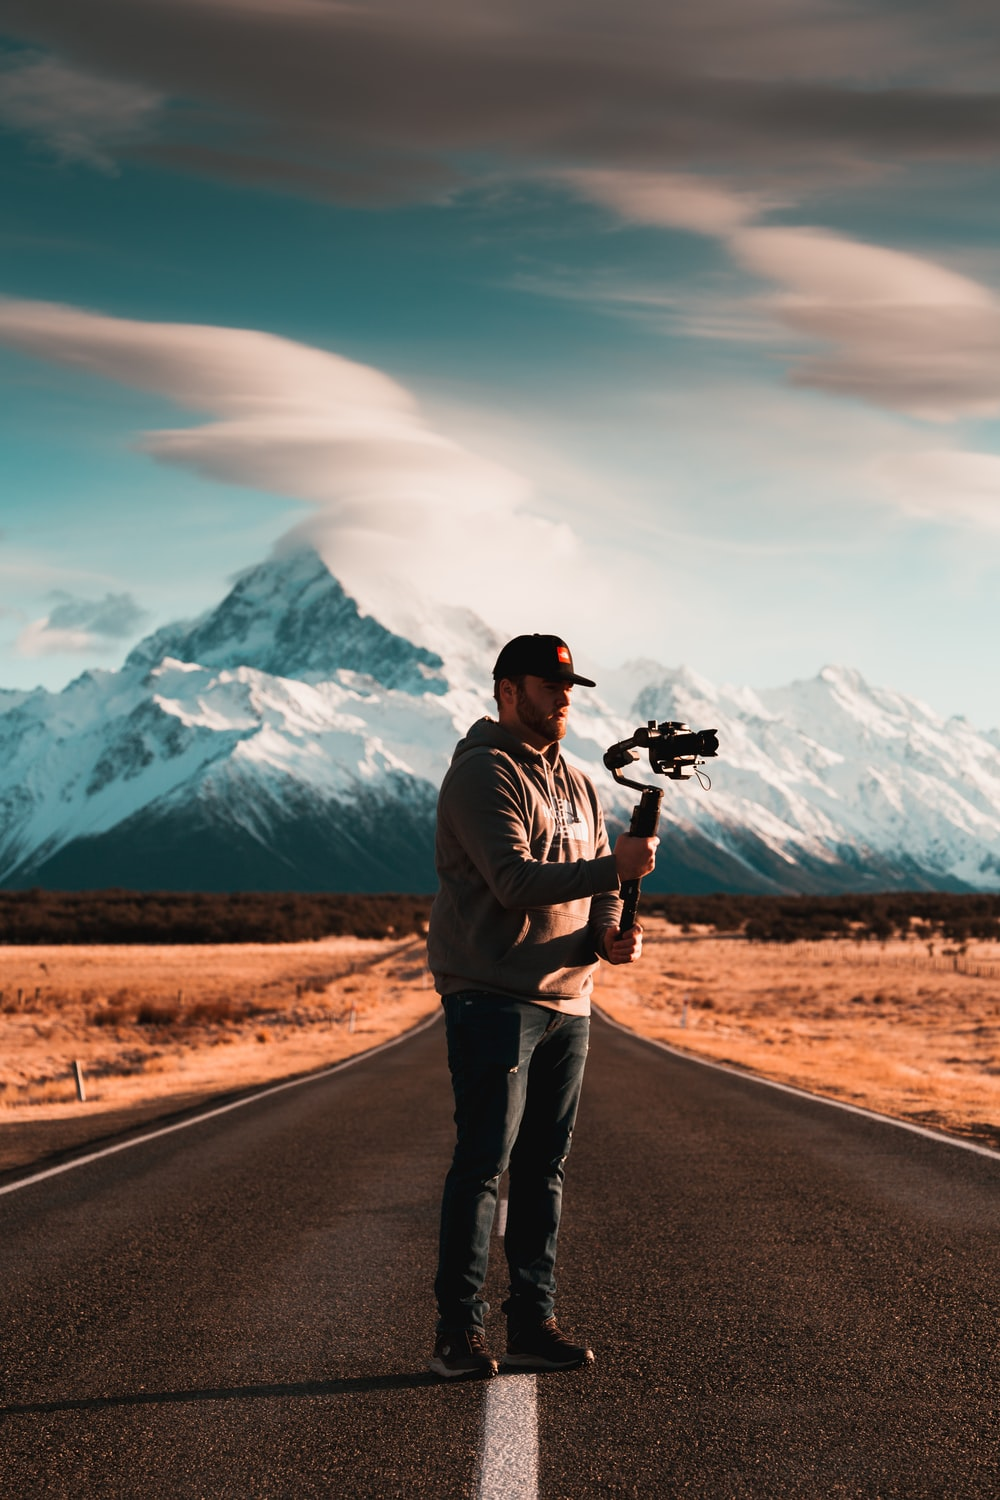 man standing on road holding camera